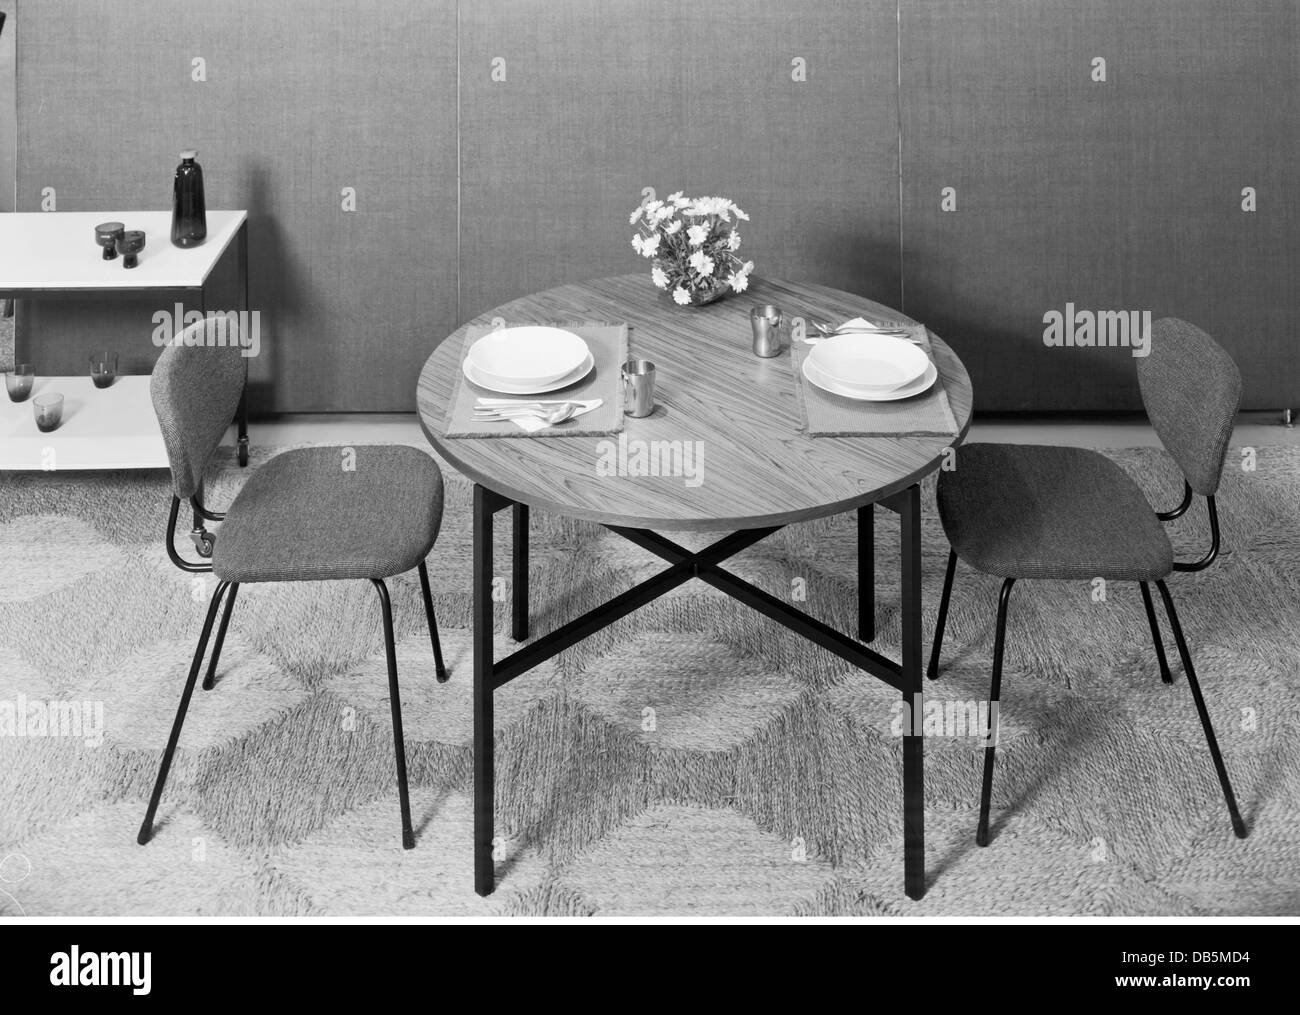 Gentil Furniture, Dining Room, 1960, Additional Rights Clearences NA   Stock